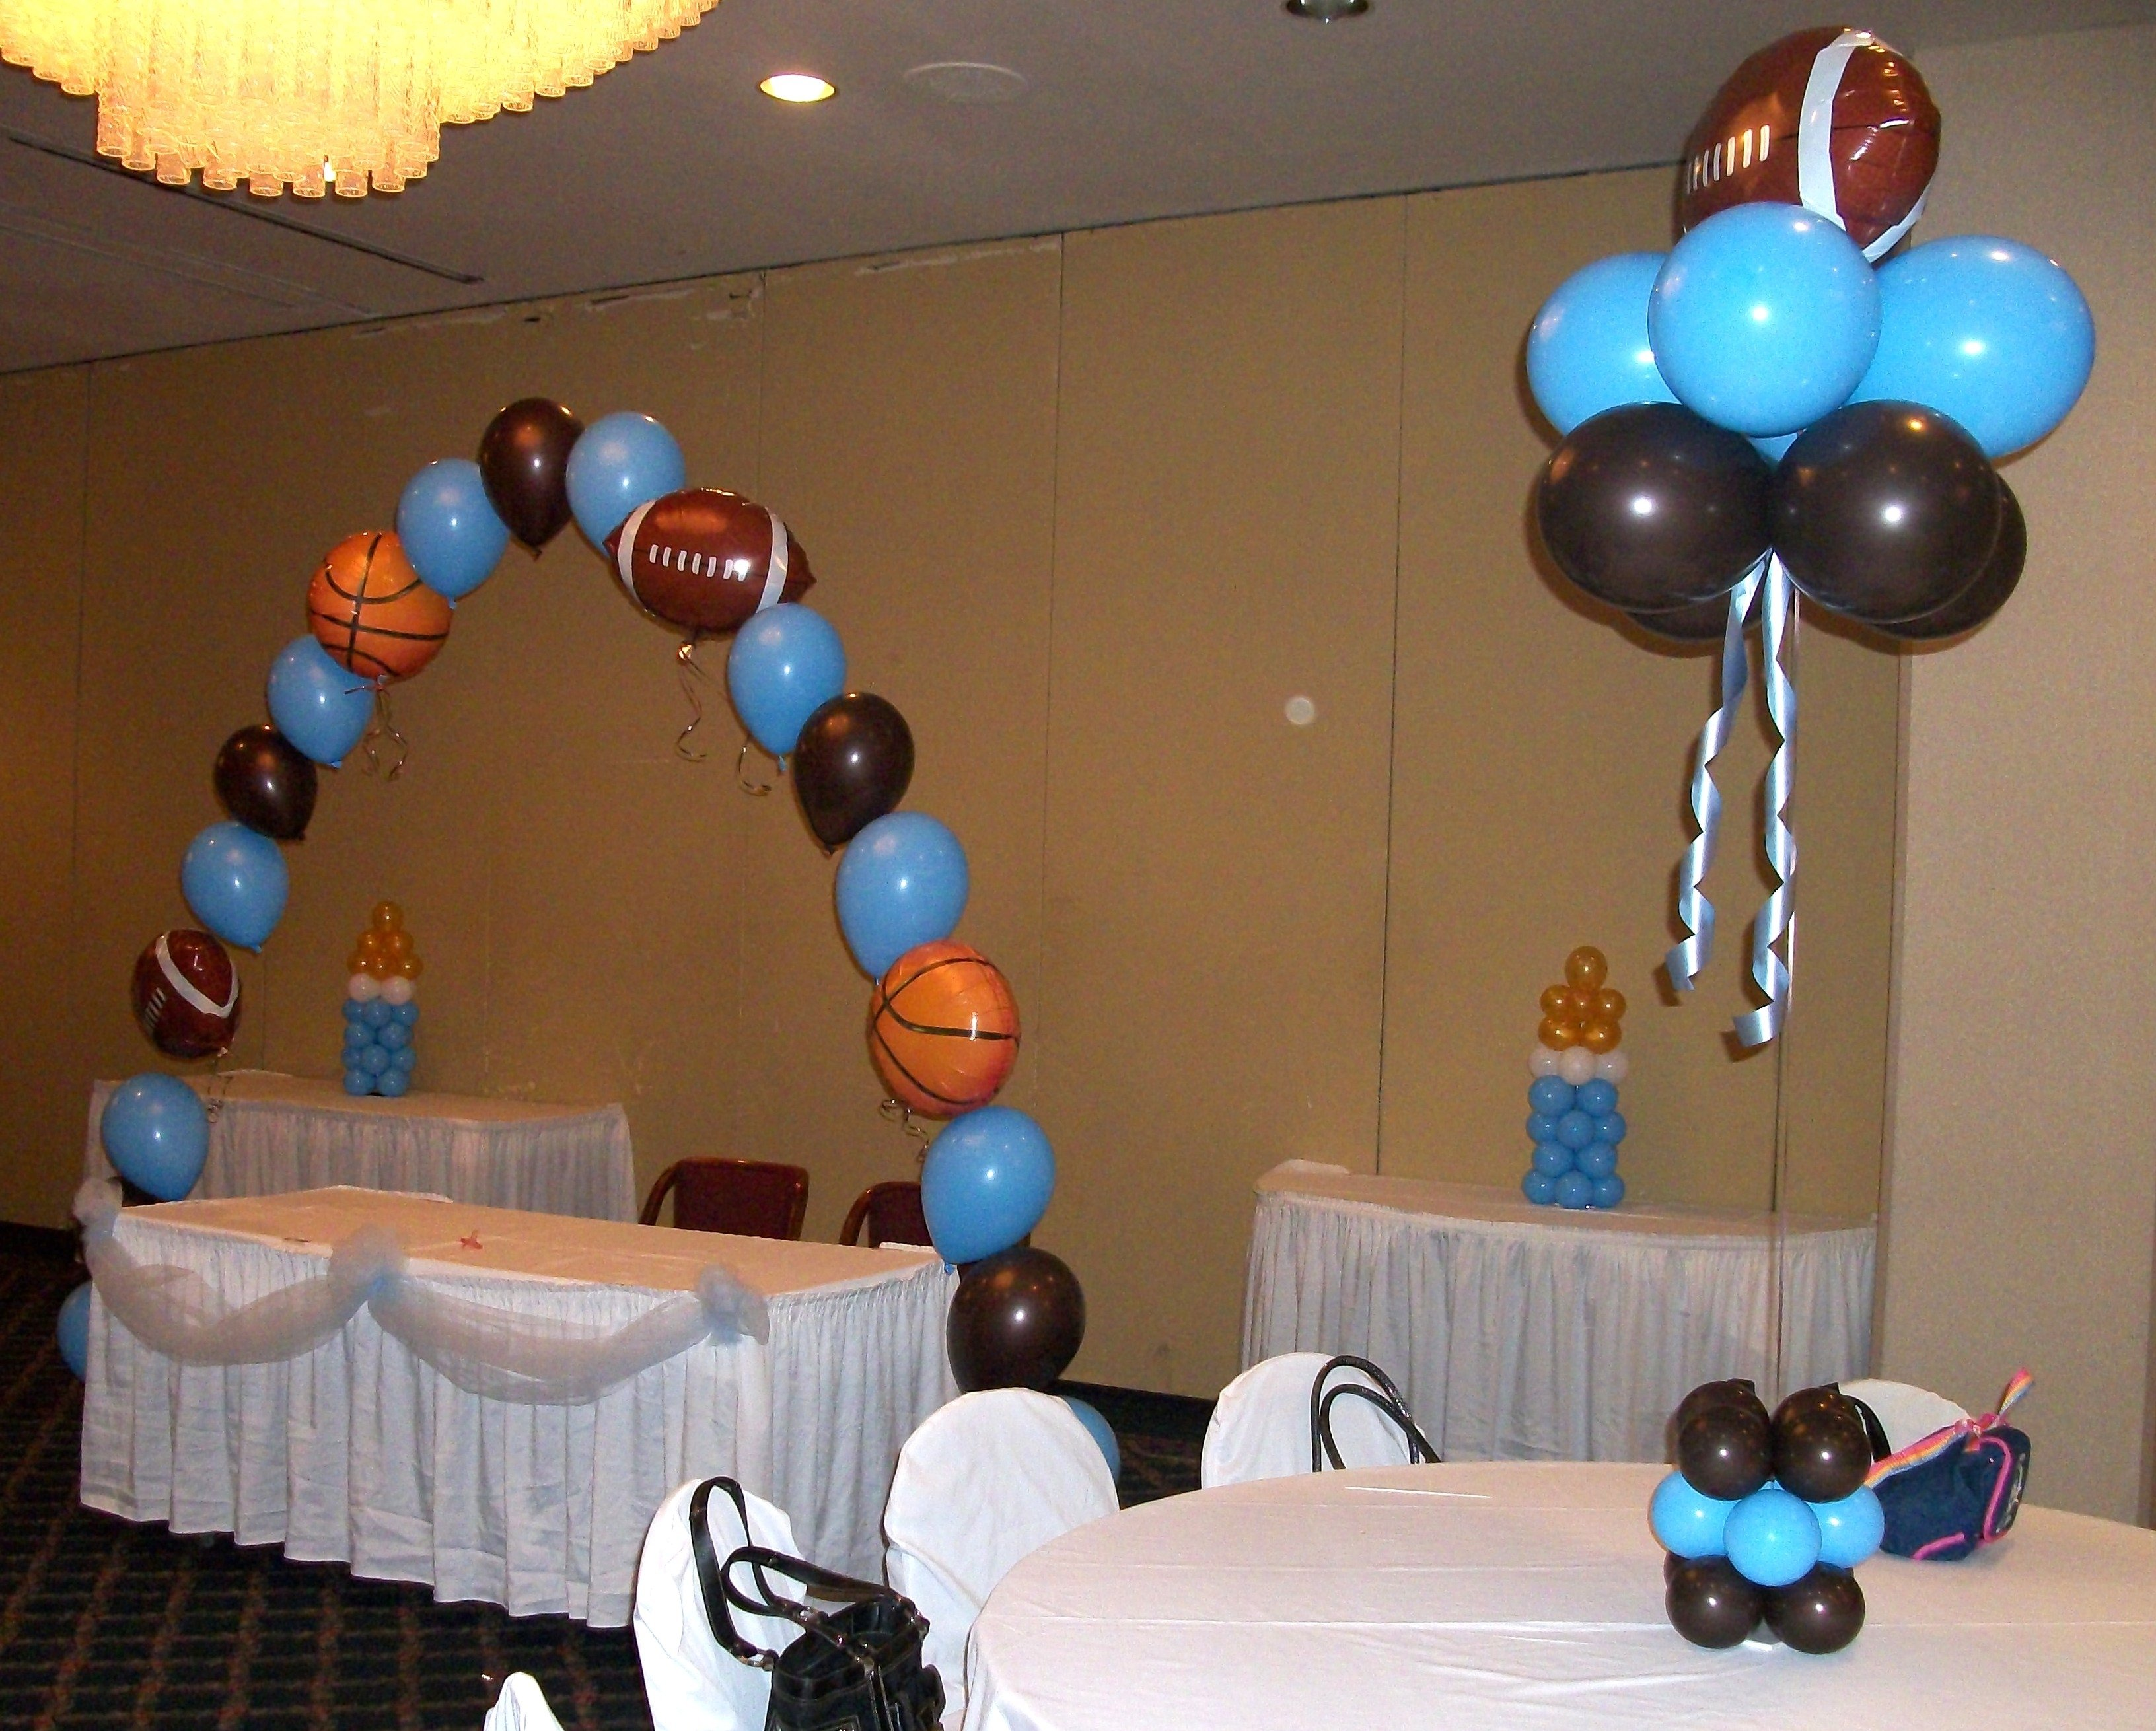 10 Ideal Sports Themed Baby Shower Ideas sport themed baby shower ideas omega center ideas for baby